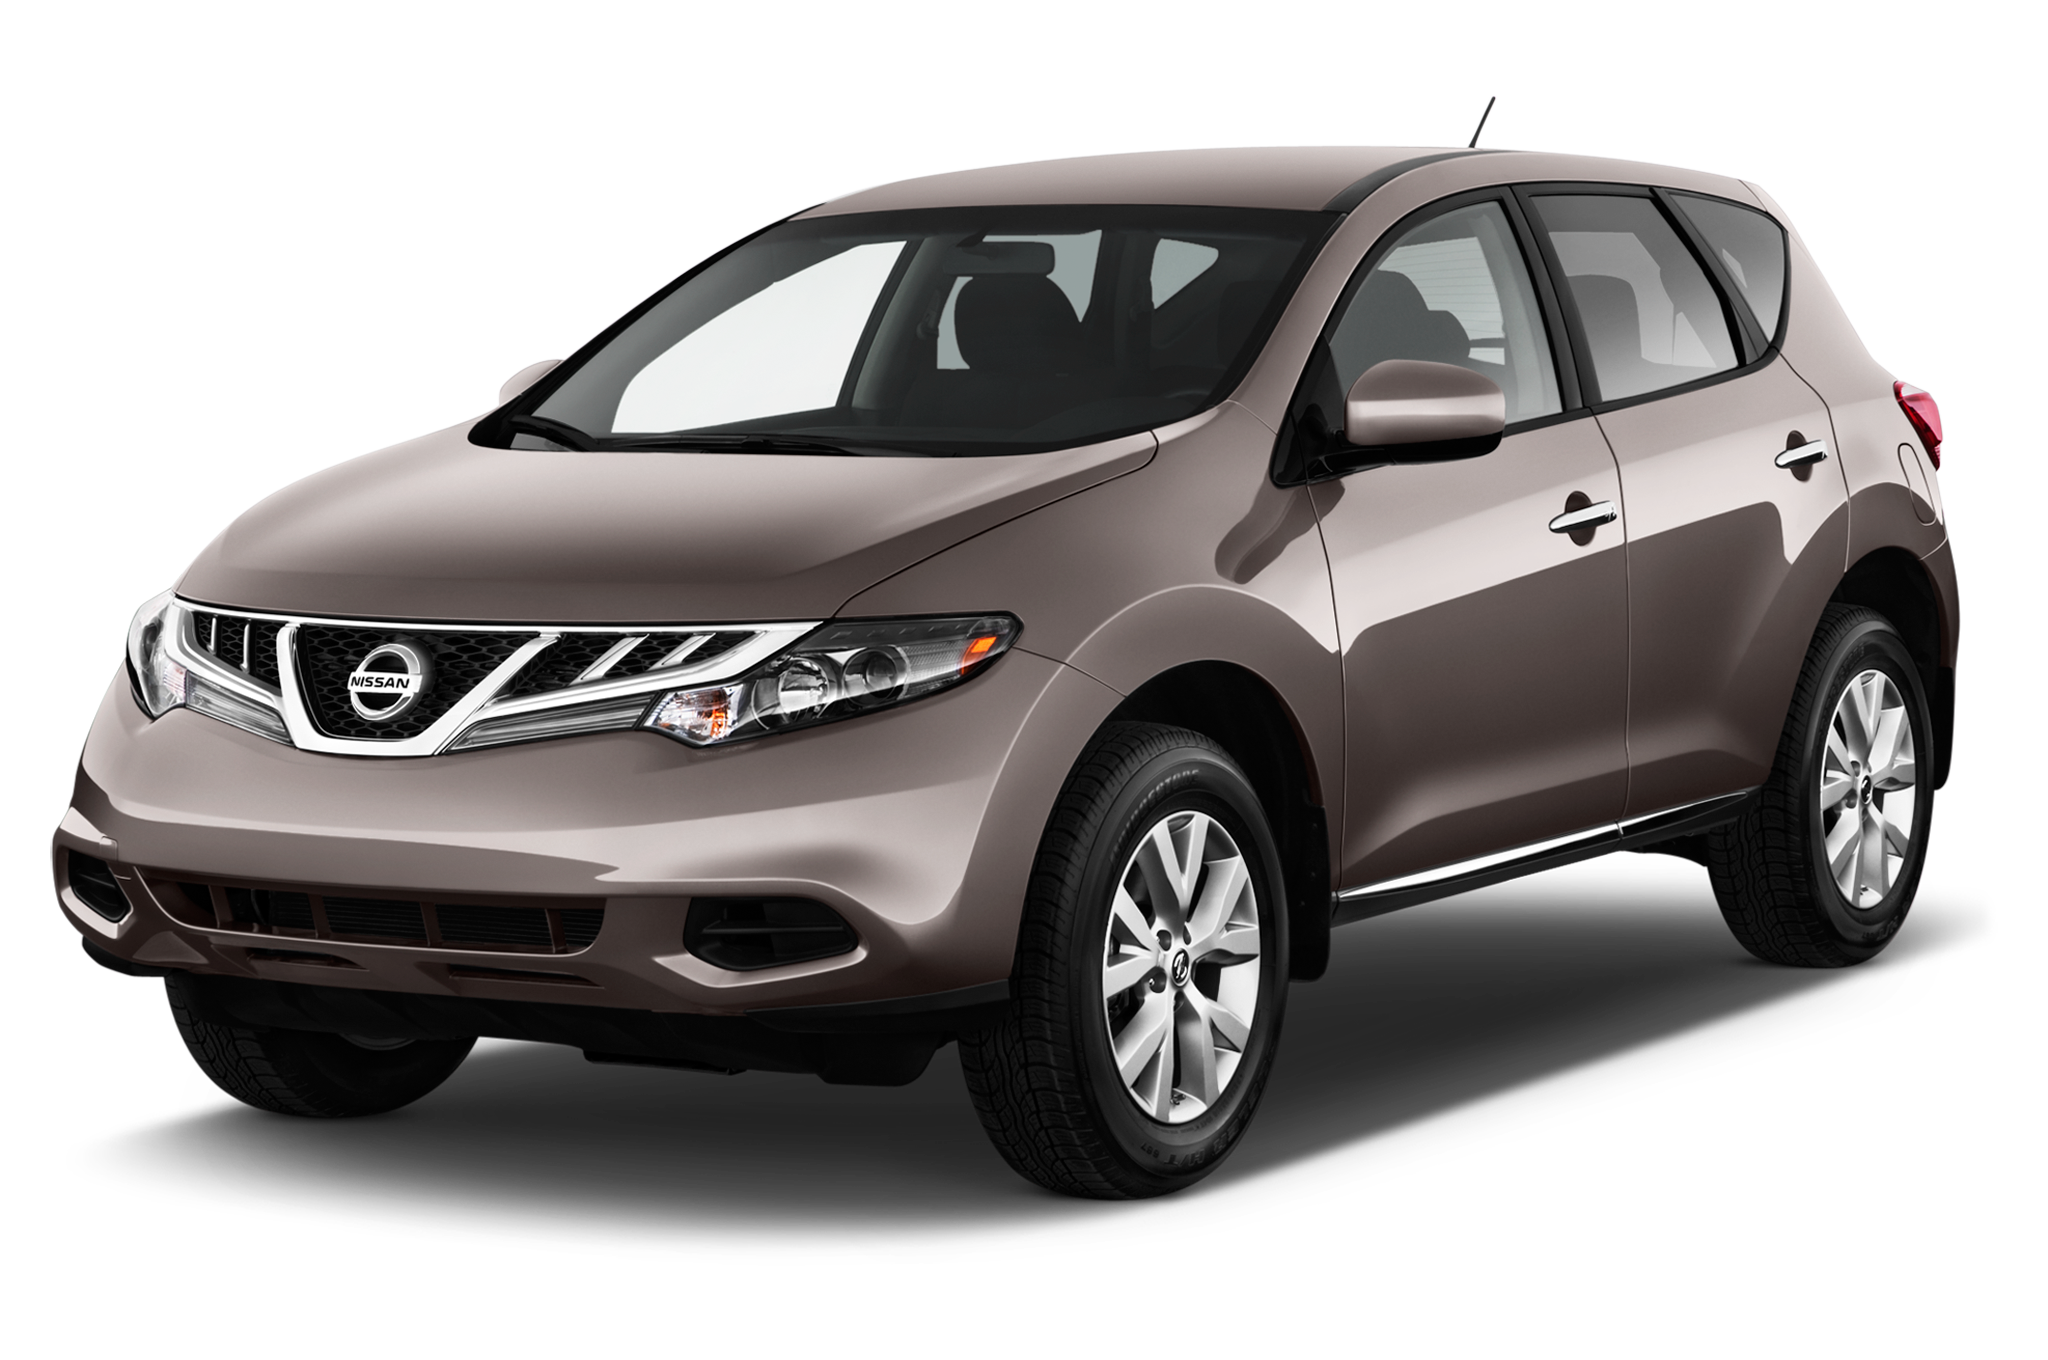 Drop Top Crossover Two Door Nissan Murano Convertible Due